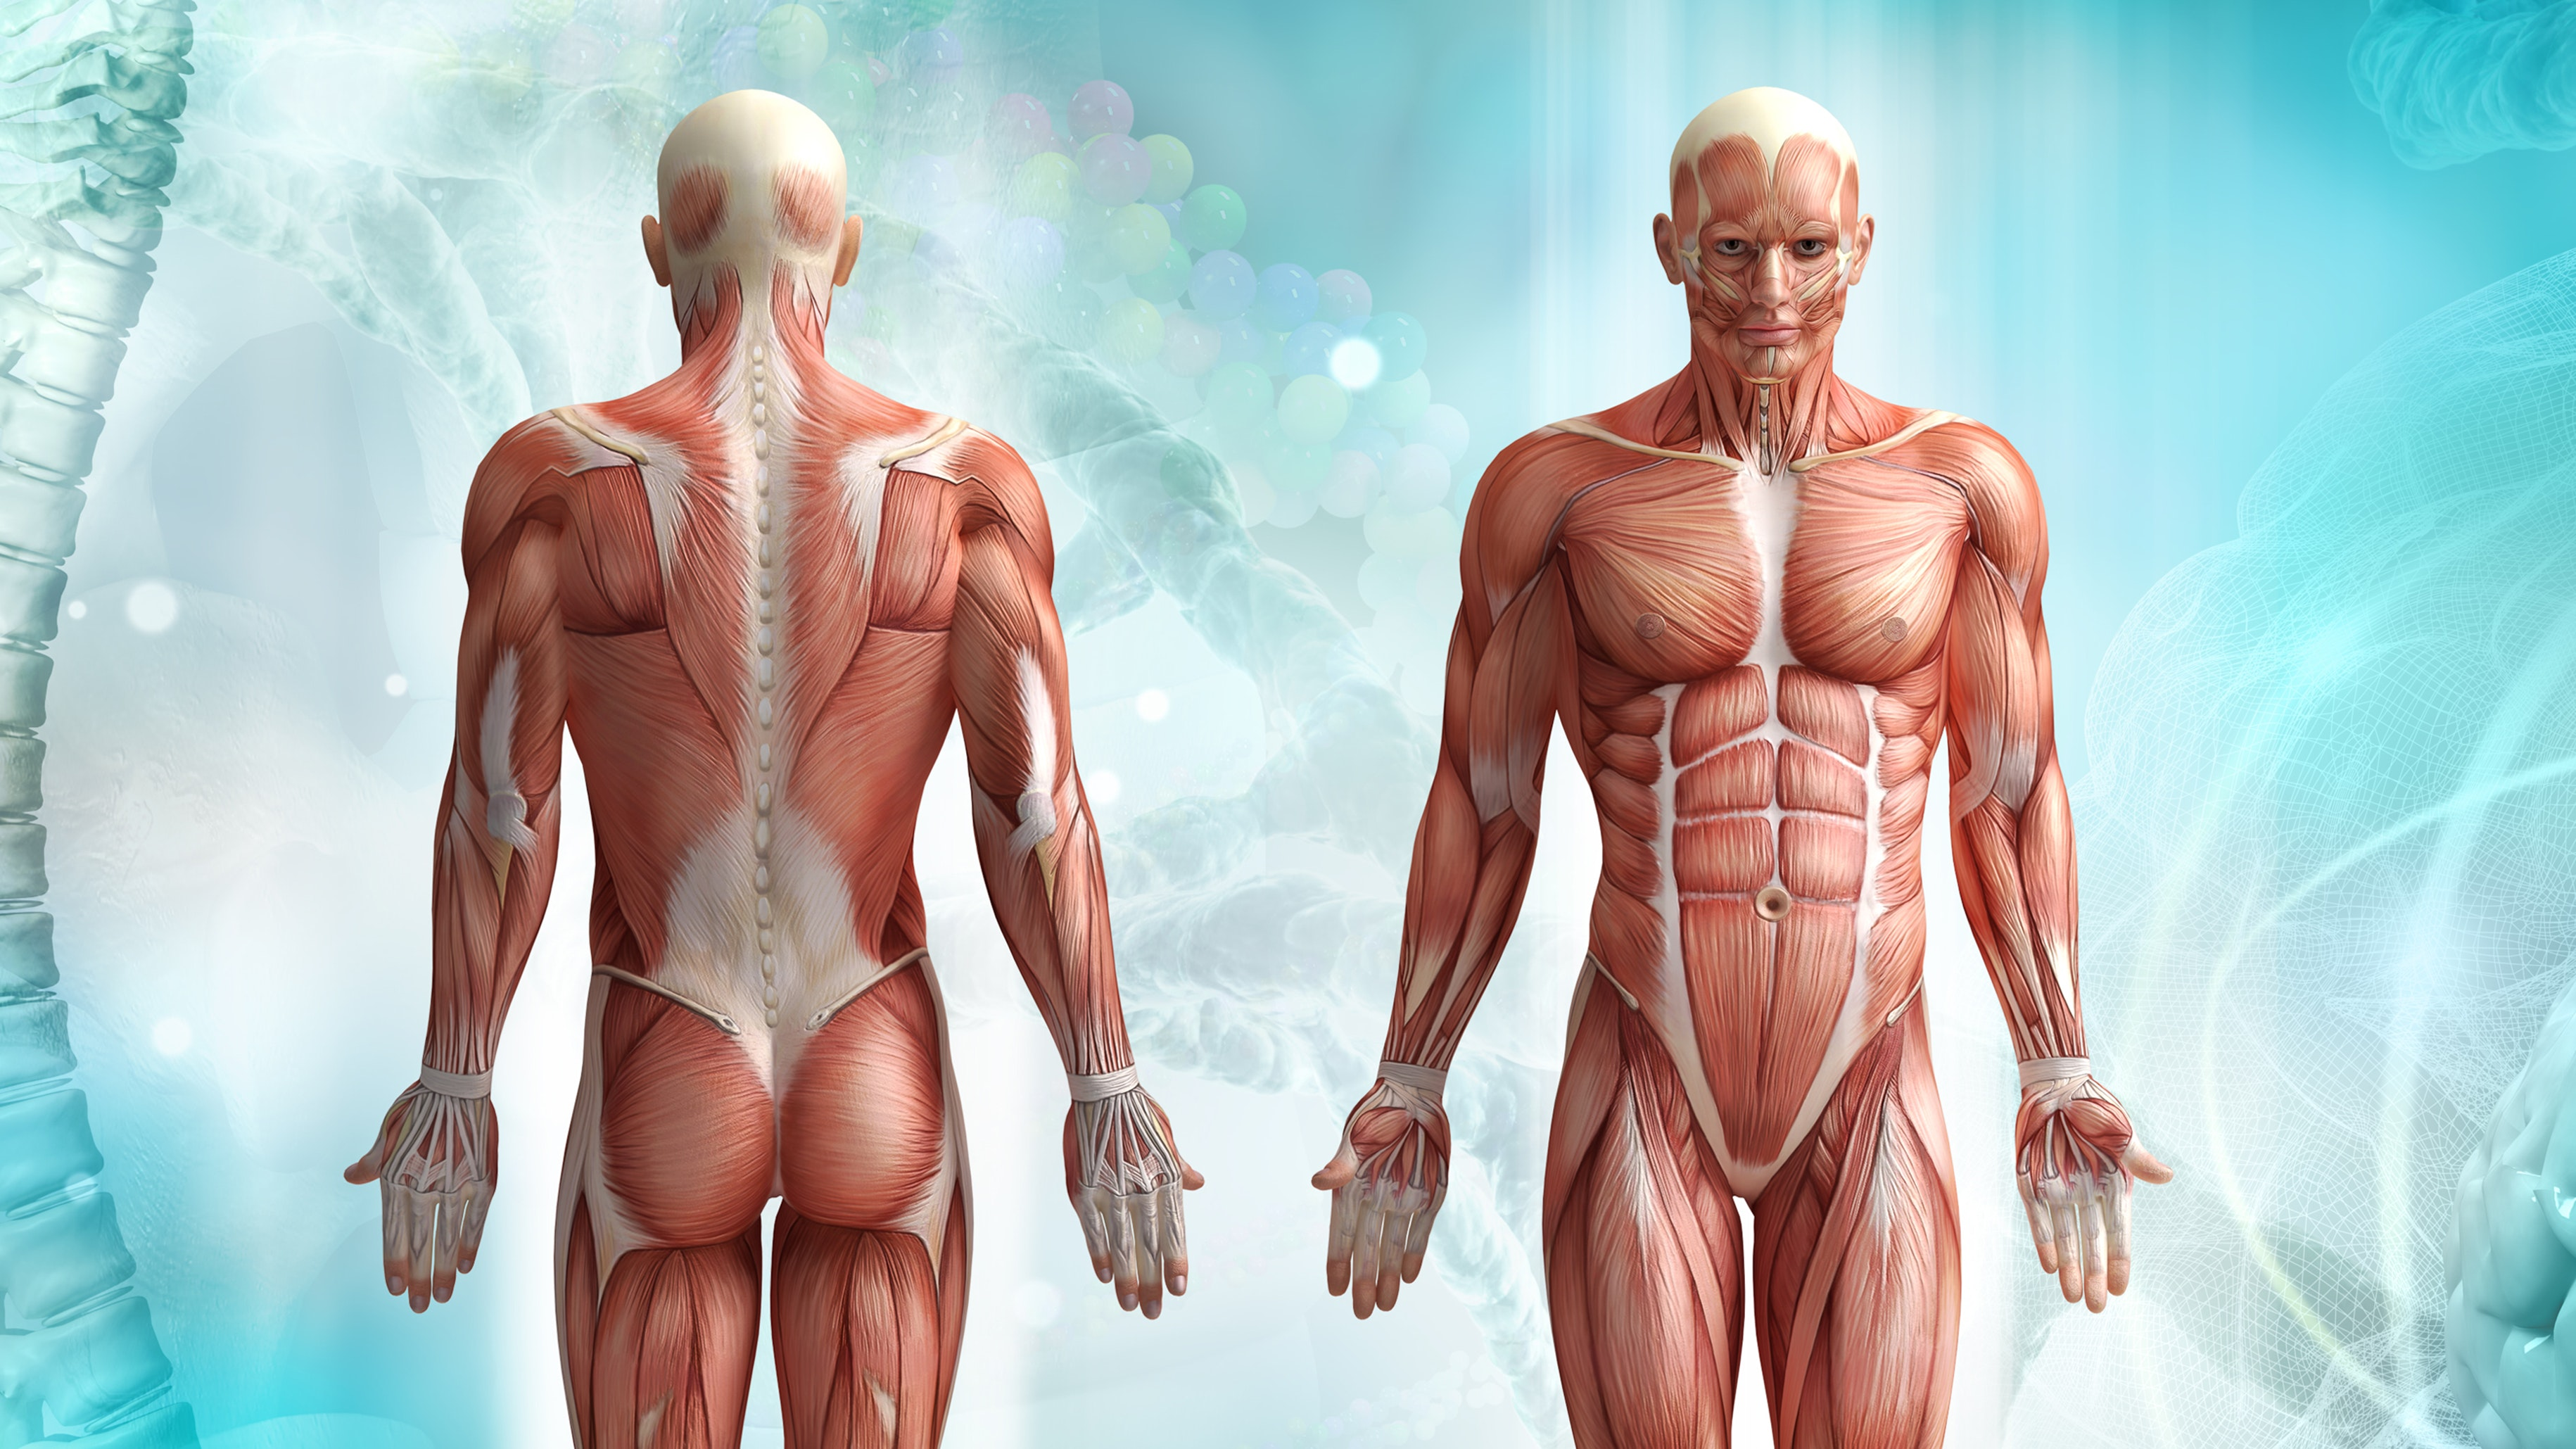 7 Myths About The Human Body That Are Often Mistaken As Facts Bt